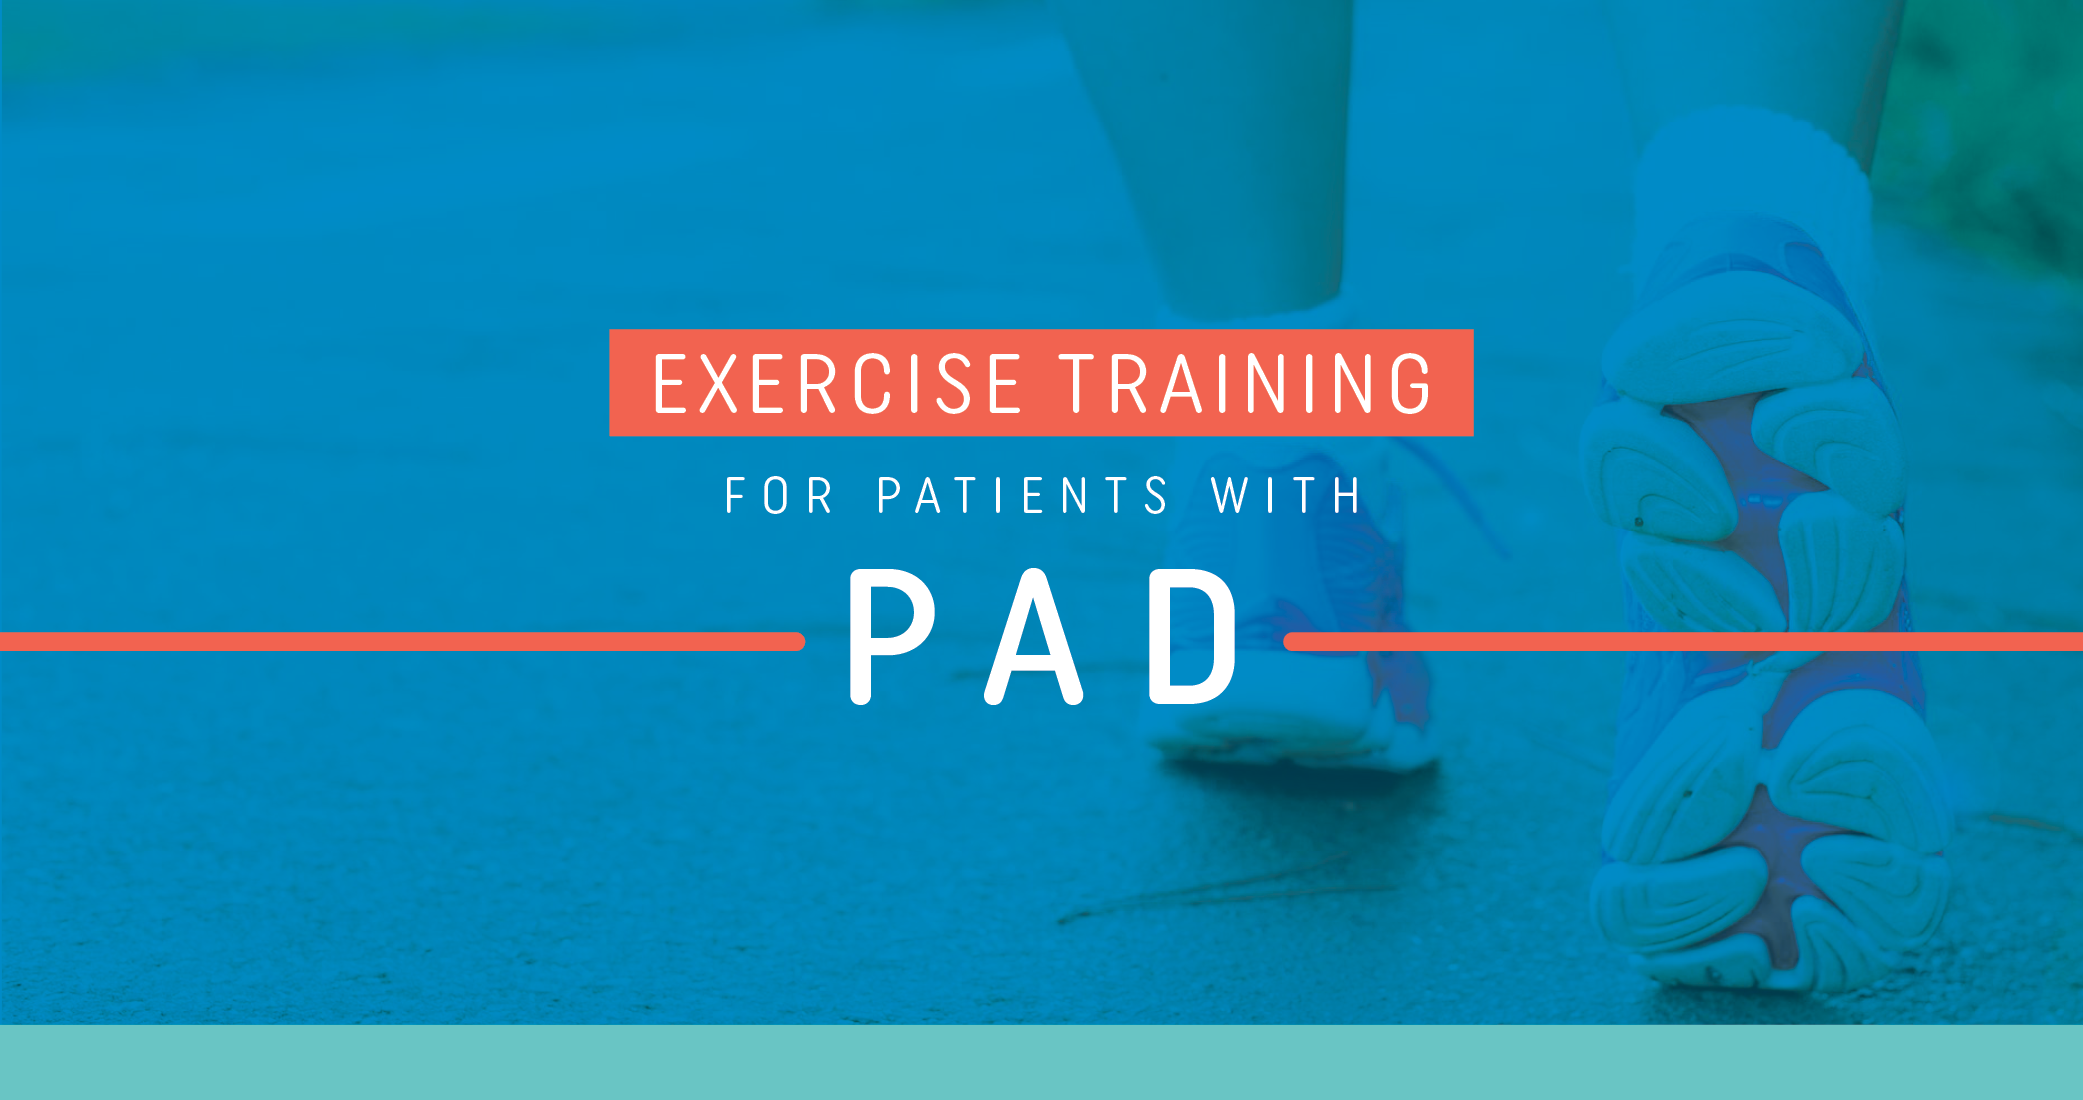 New Whitepaper: Exercise Guidelines for Patients with PAD